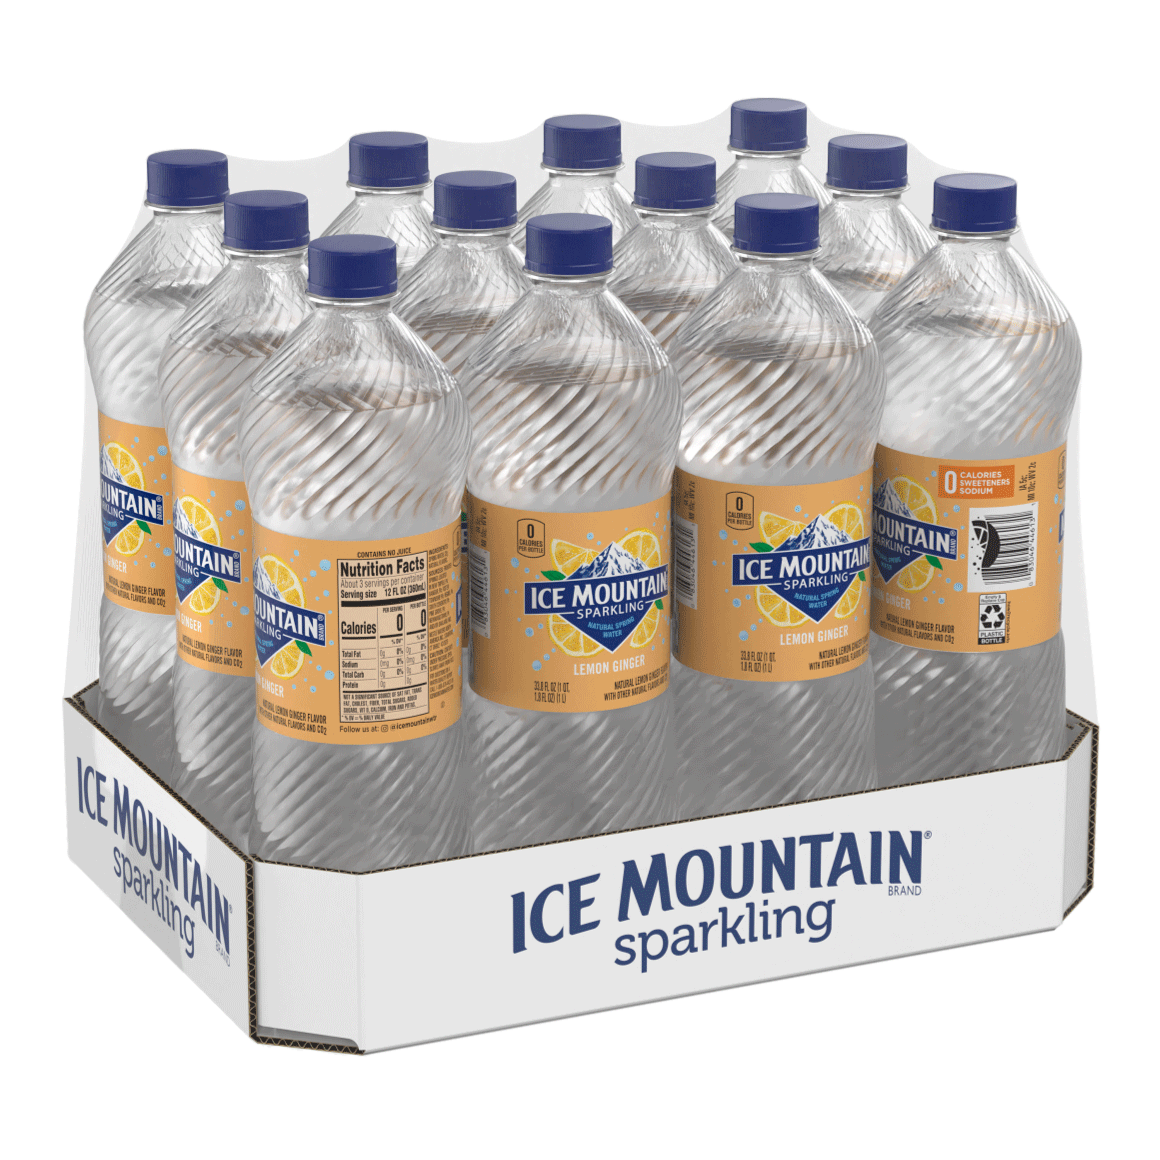 Ice Mountain® Brand Sparkling 100% Natural Spring Water - Lemon Ginger Image1